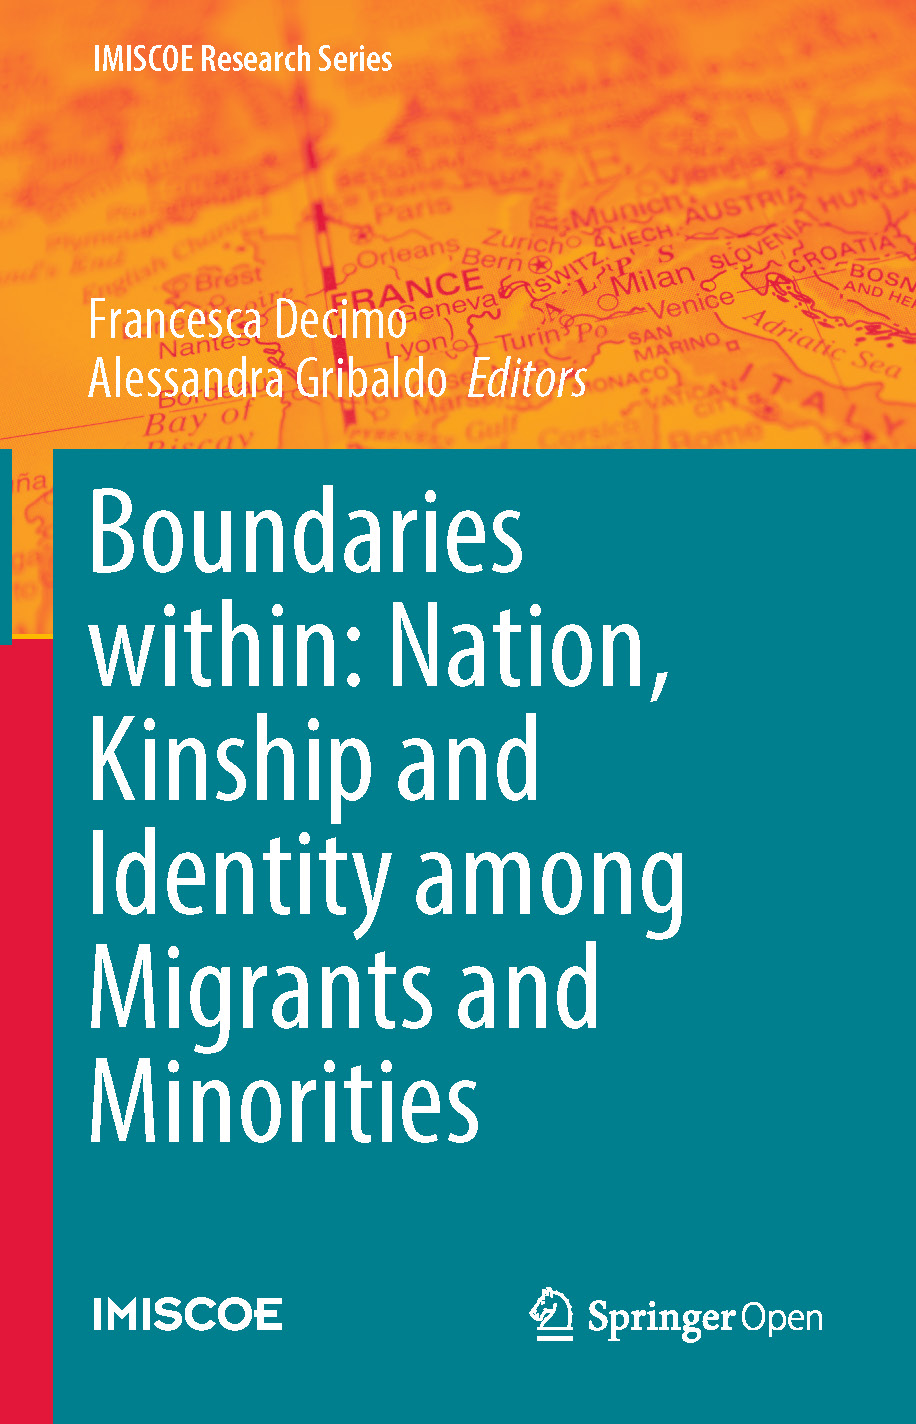 Cover of Boundaries within: Nation, Kinship and Identity among Migrants and Minorities